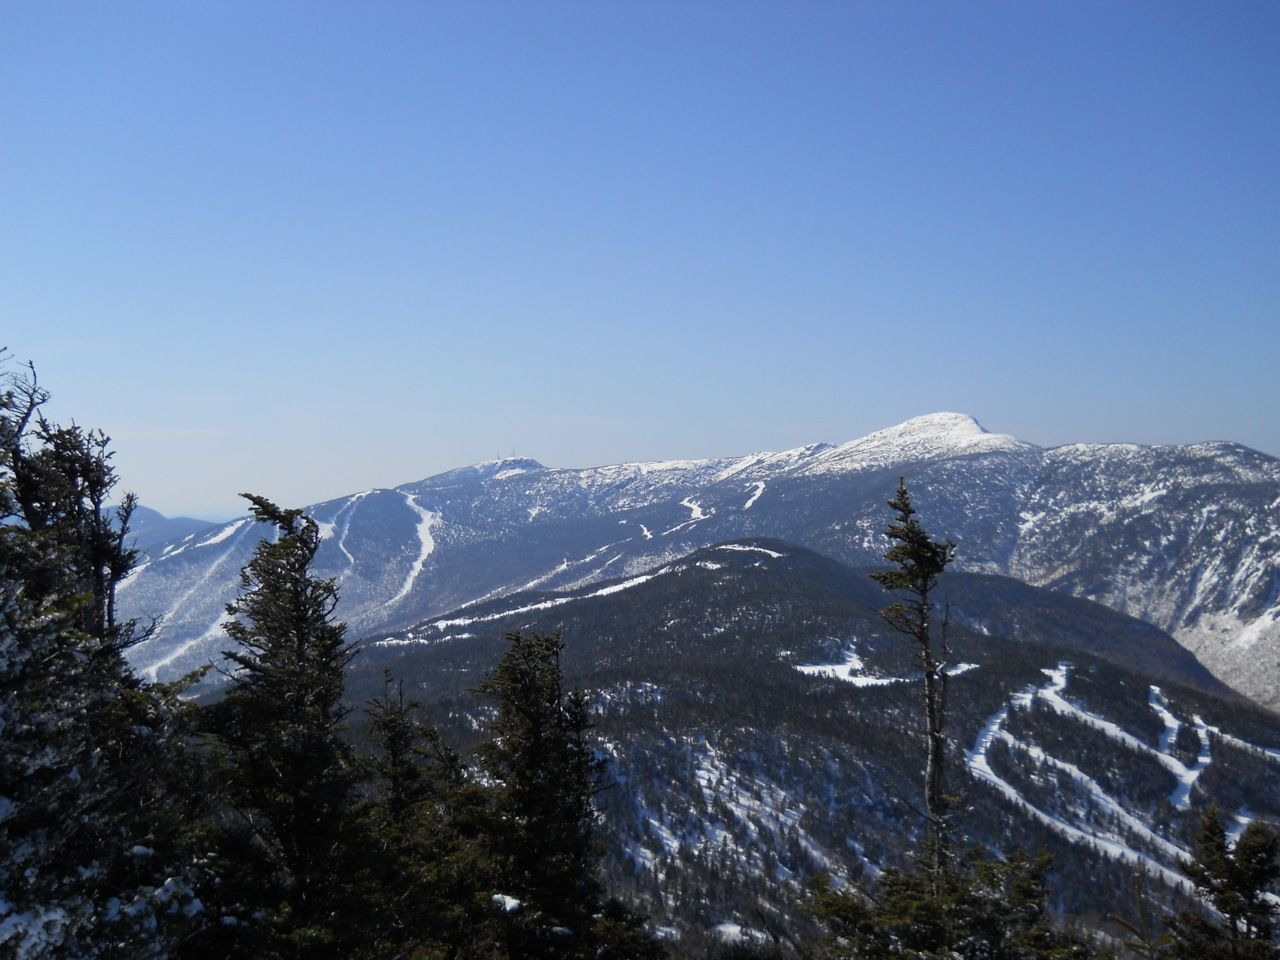 view looking towards mt. mansfield and stowe ski resort from